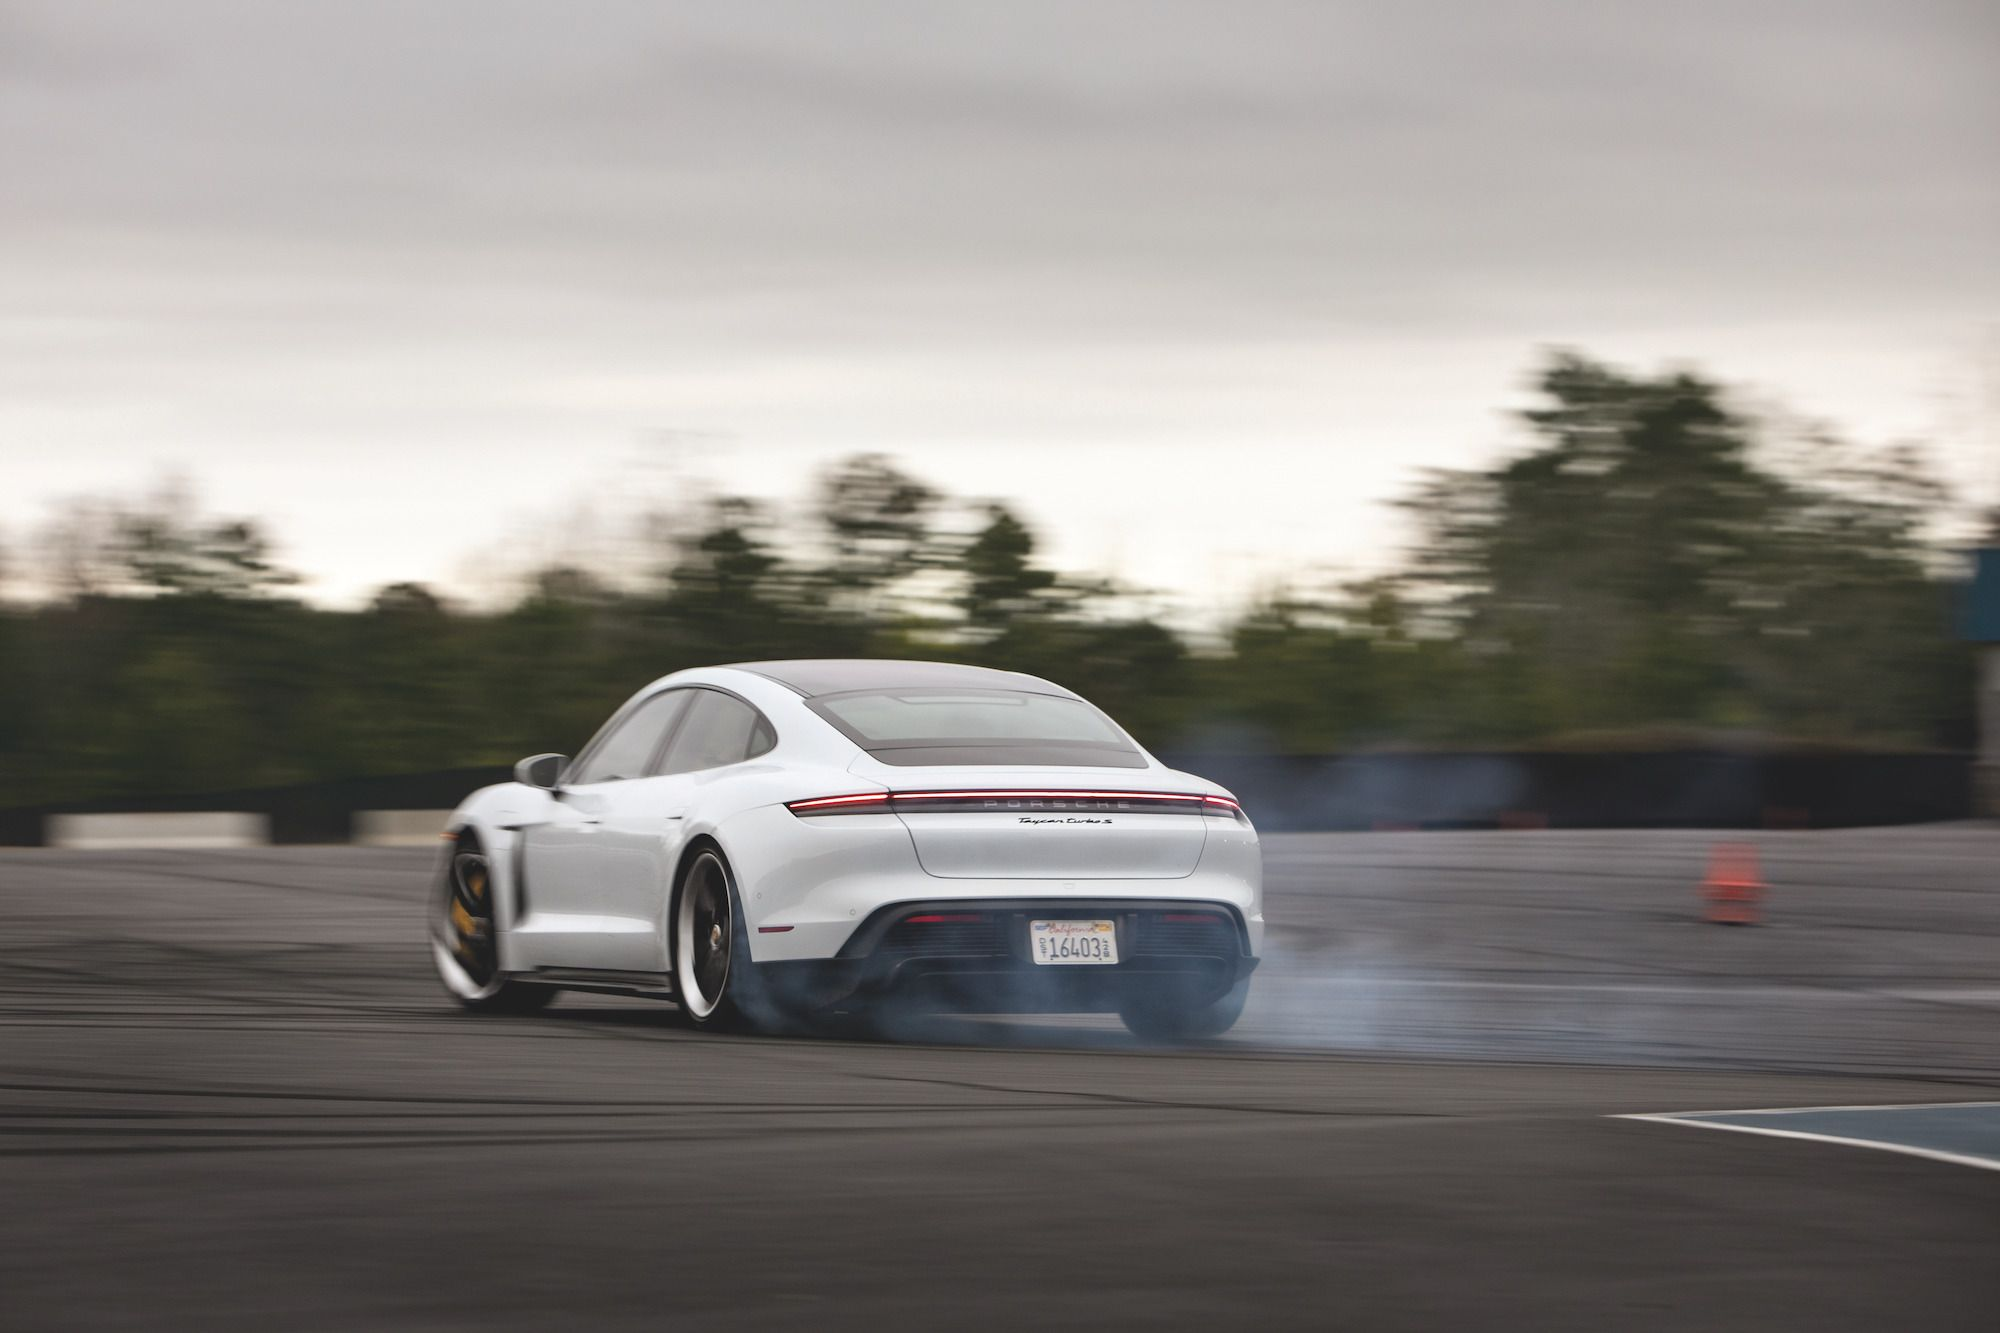 Porsche Taycan Turbo S Review Turbo S Chases The Wrong Goals